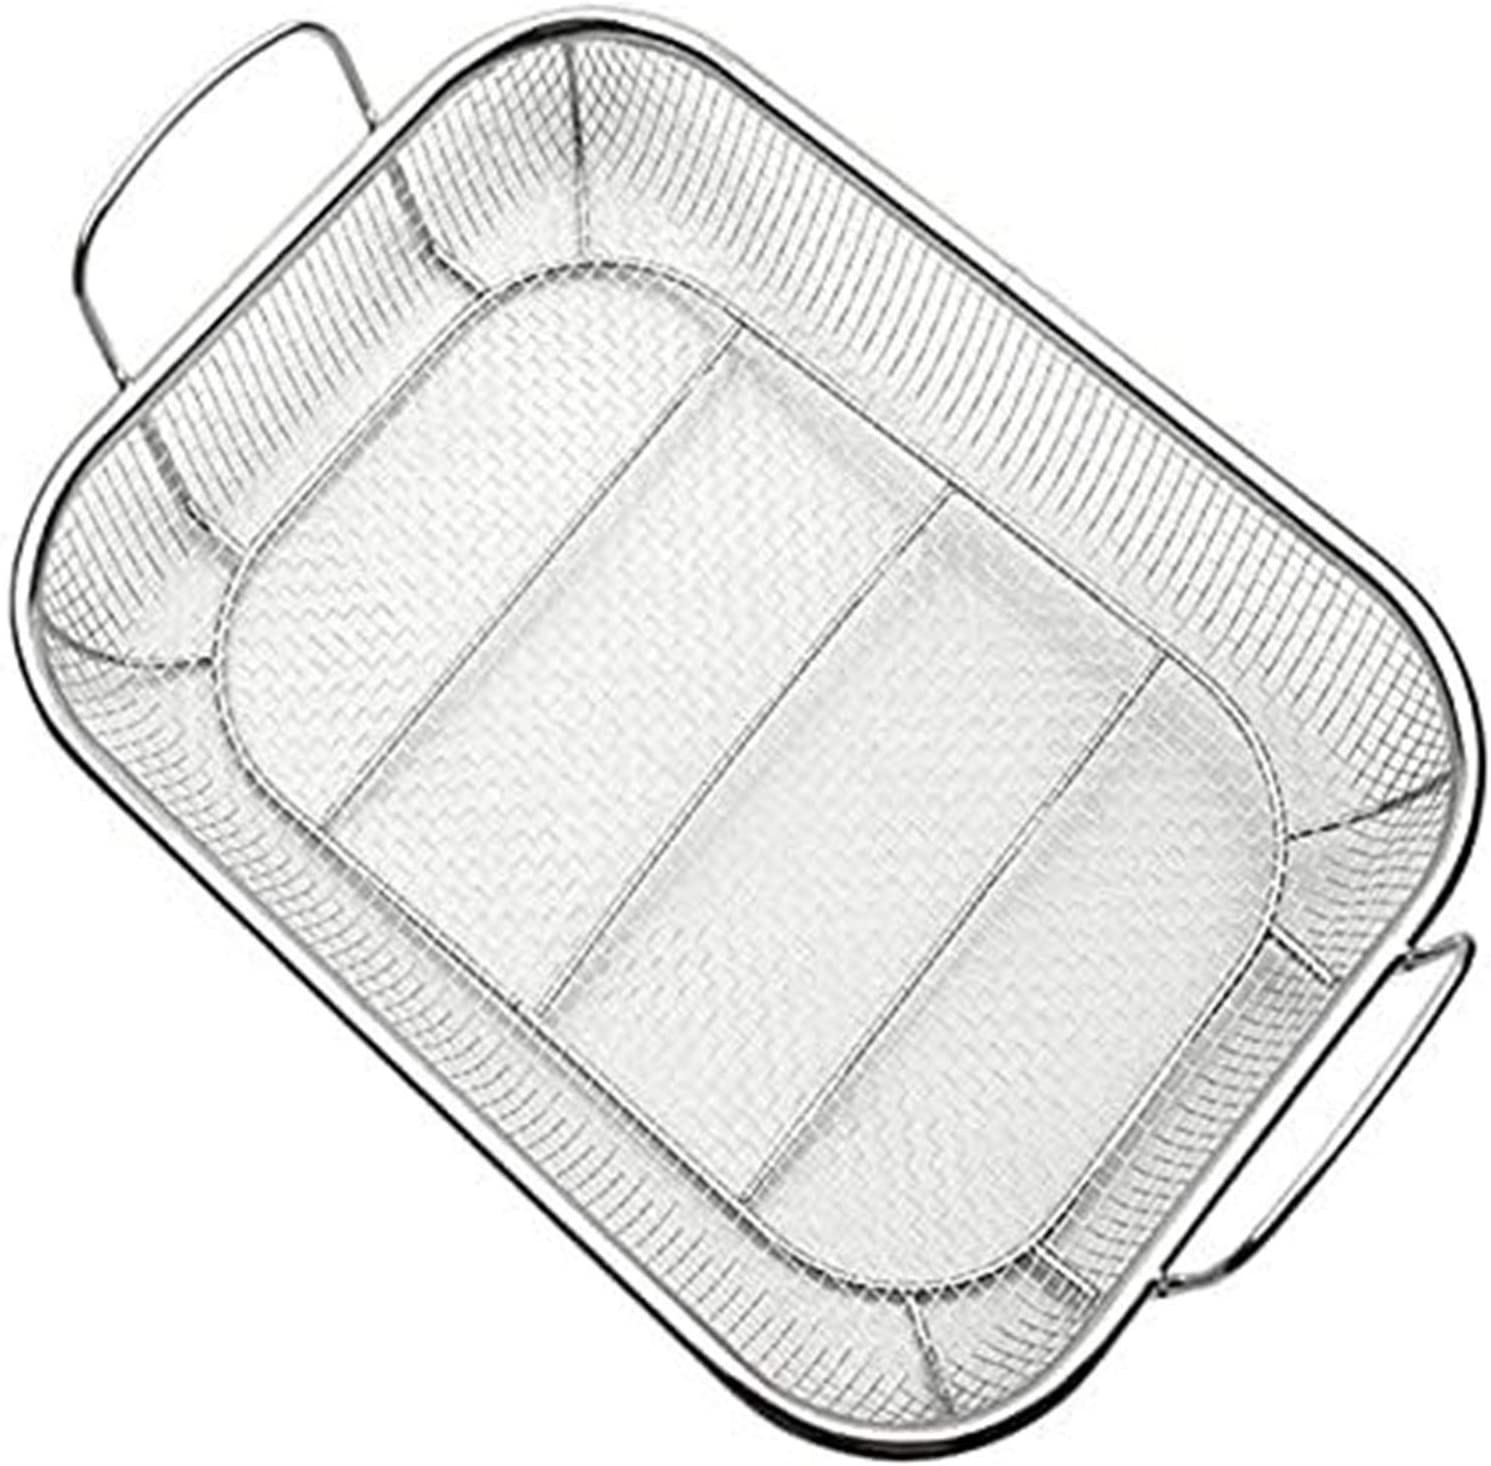 JJZXPJ BBQ Accessories Stainless 2021 new Steel and Square Outstanding Vegetable